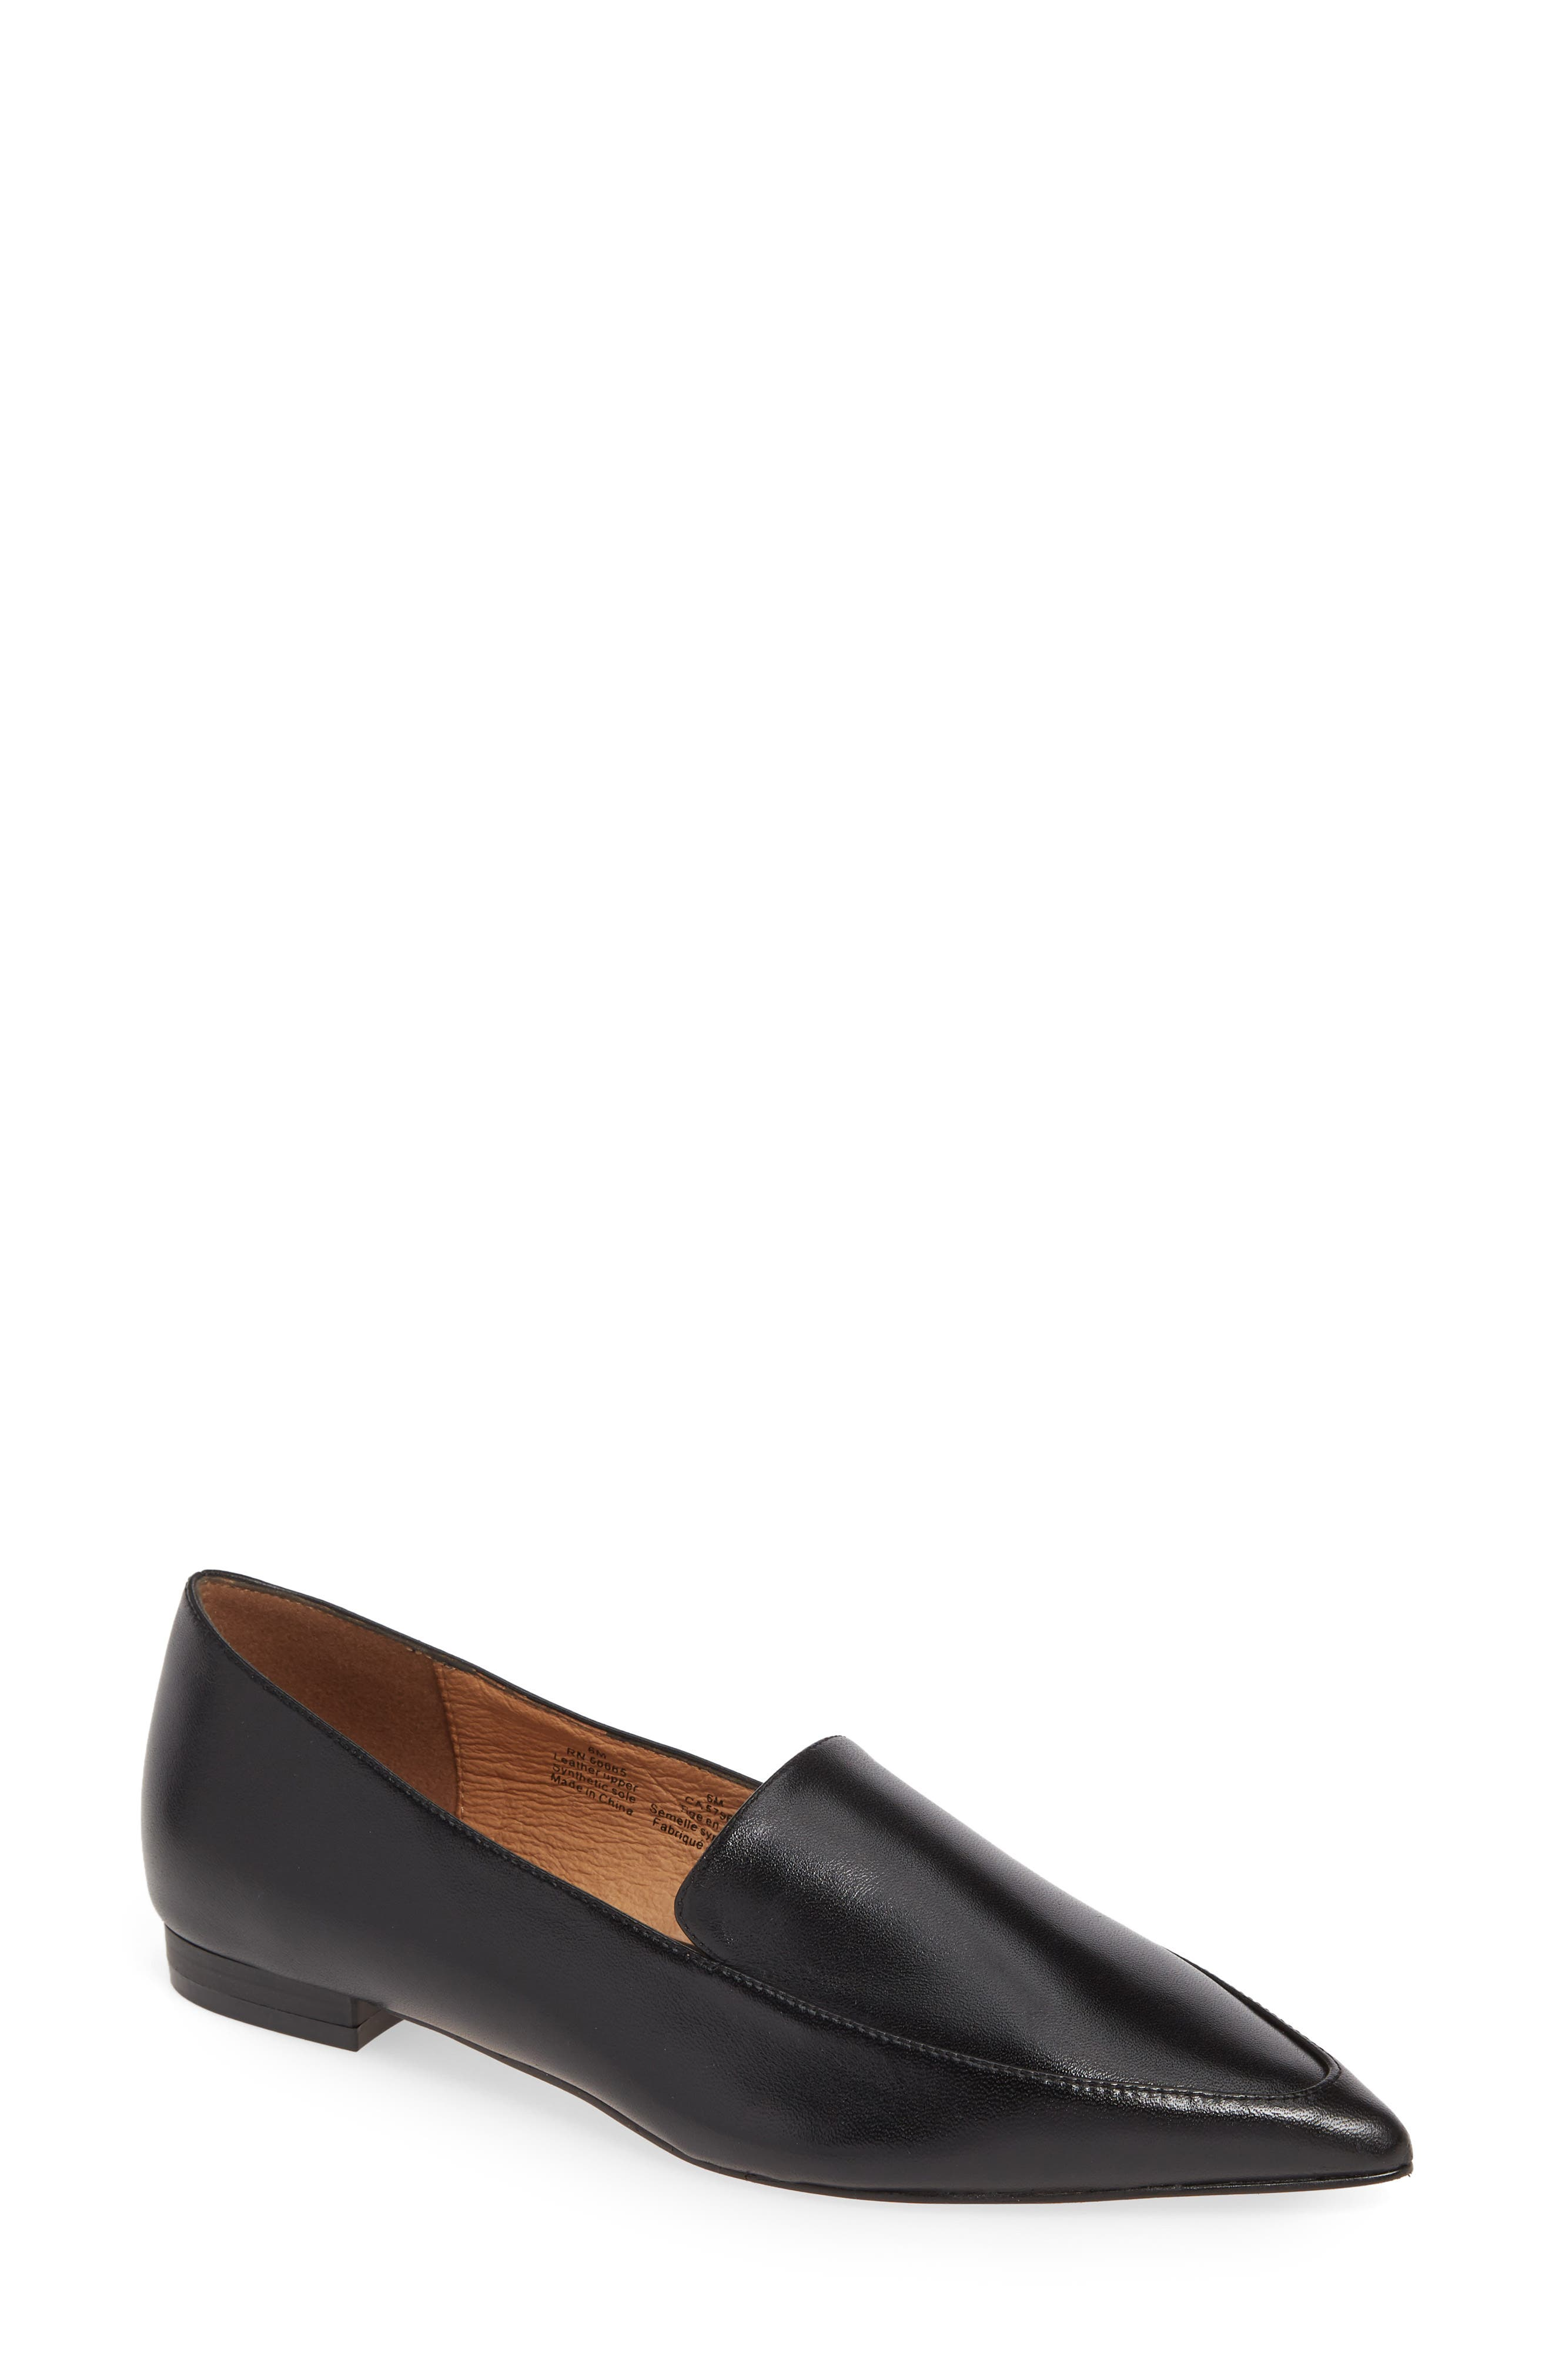 Kendra Pointy Toe Loafer, Main, color, BLACK LEATHER